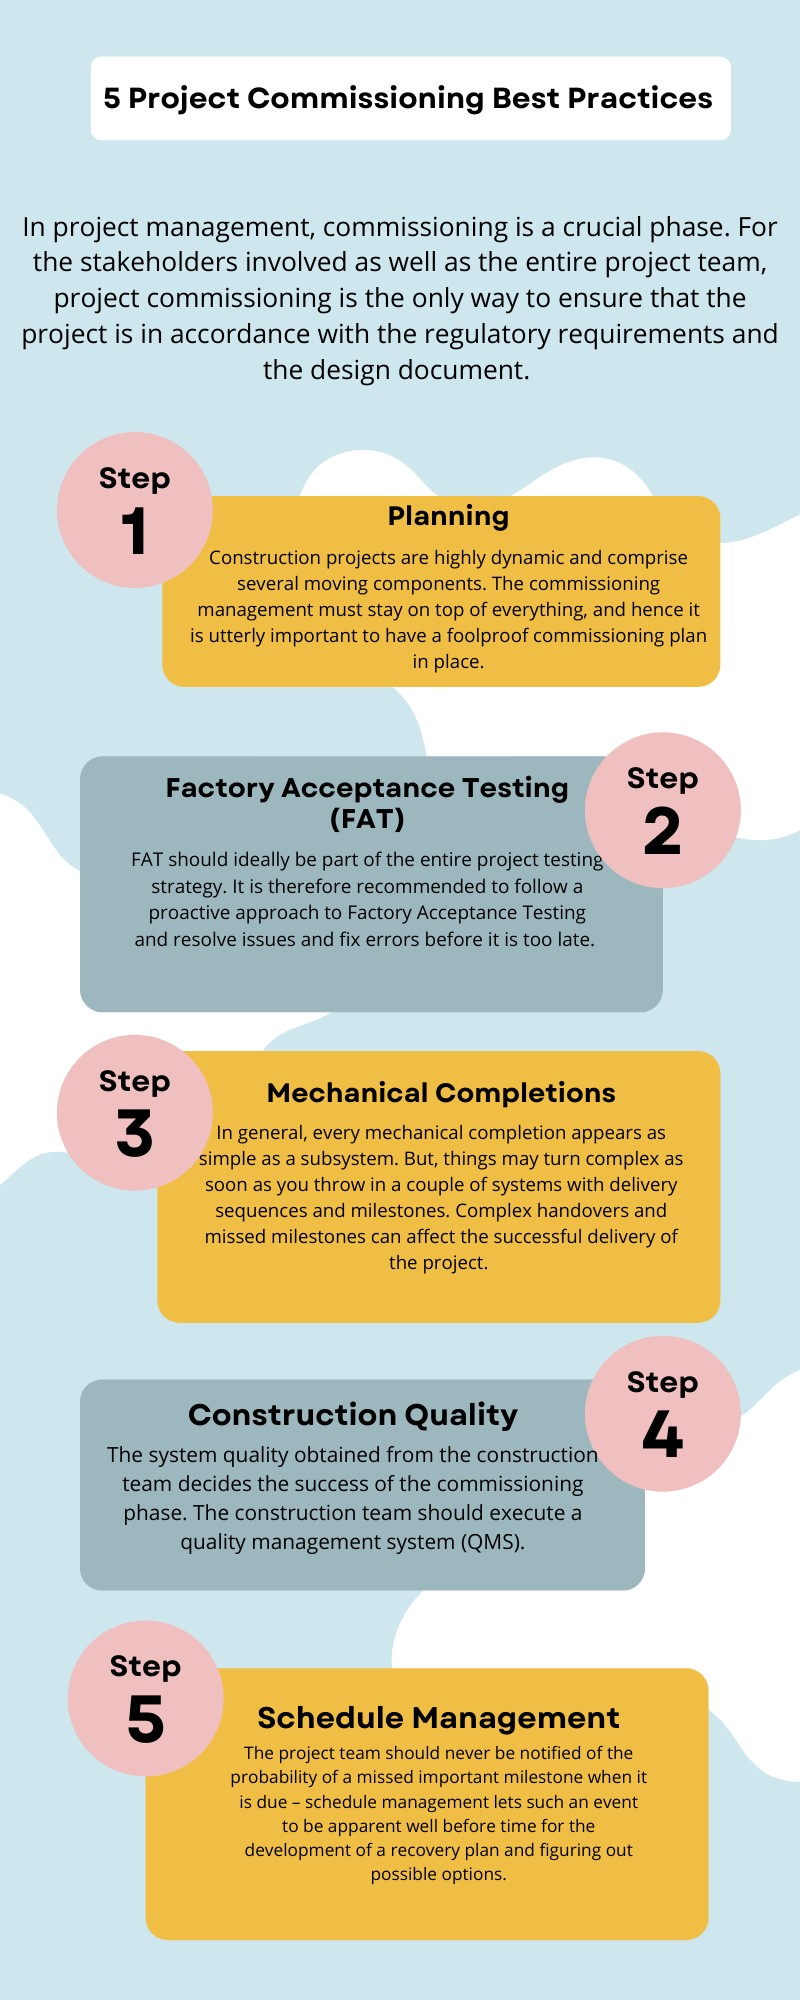 5 Project Commissioning Best Practices for You to Consider